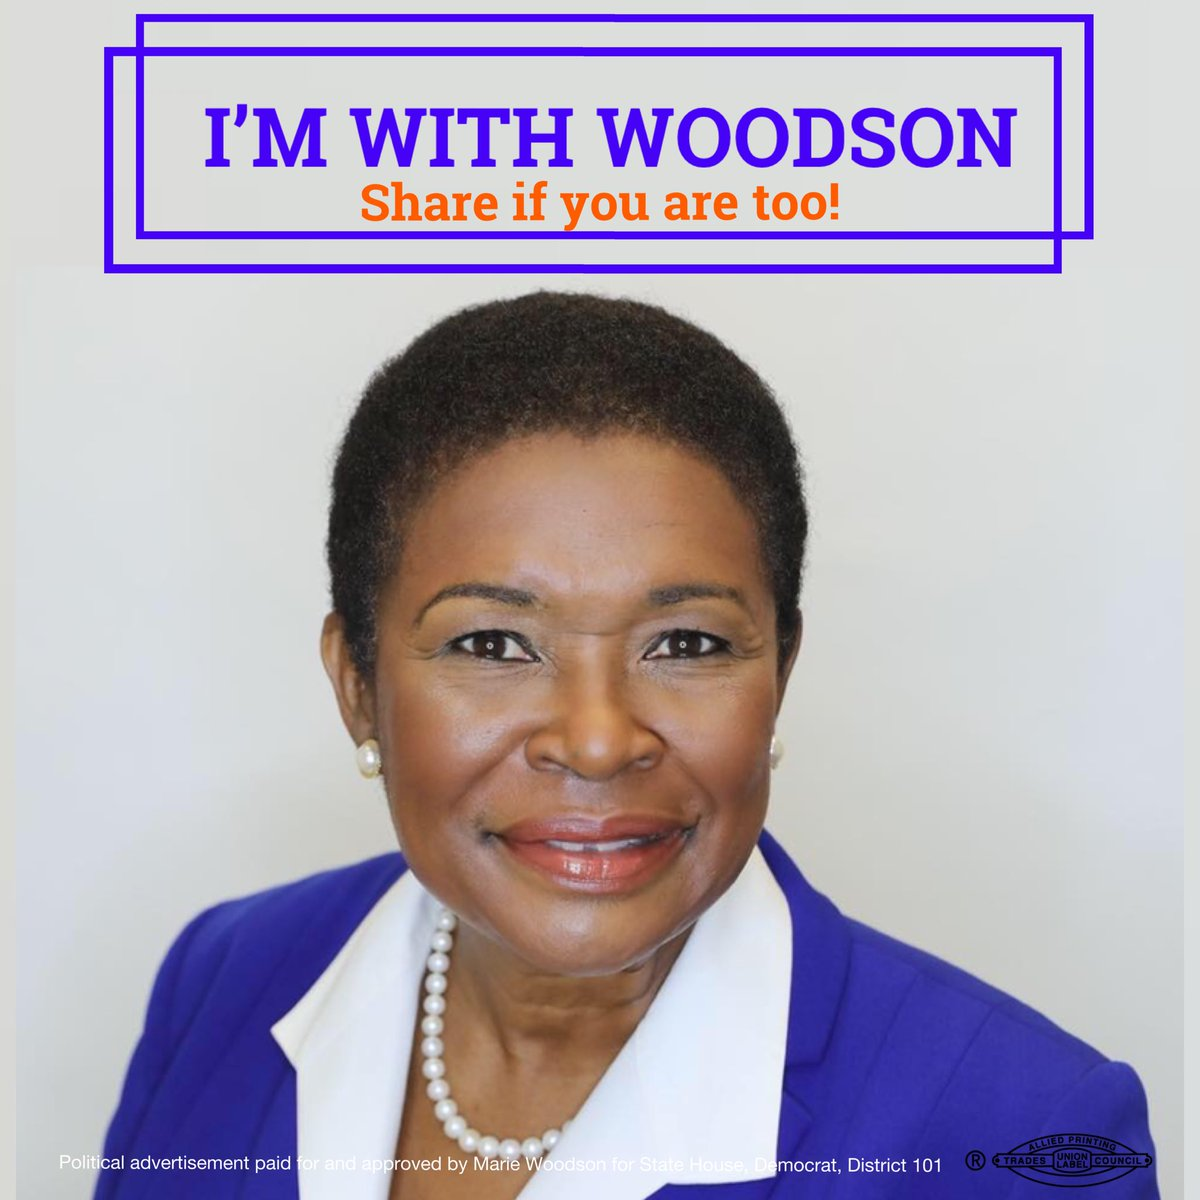 Let's send Marie Woodson to represent and fight for the needs of District 101 in Tallahassee!! Come and join us on July 12th, 2019 6:30 pm for our campaign kickoff event! (RSVP: Link in bio)   #TeamWoodson #FLHD101